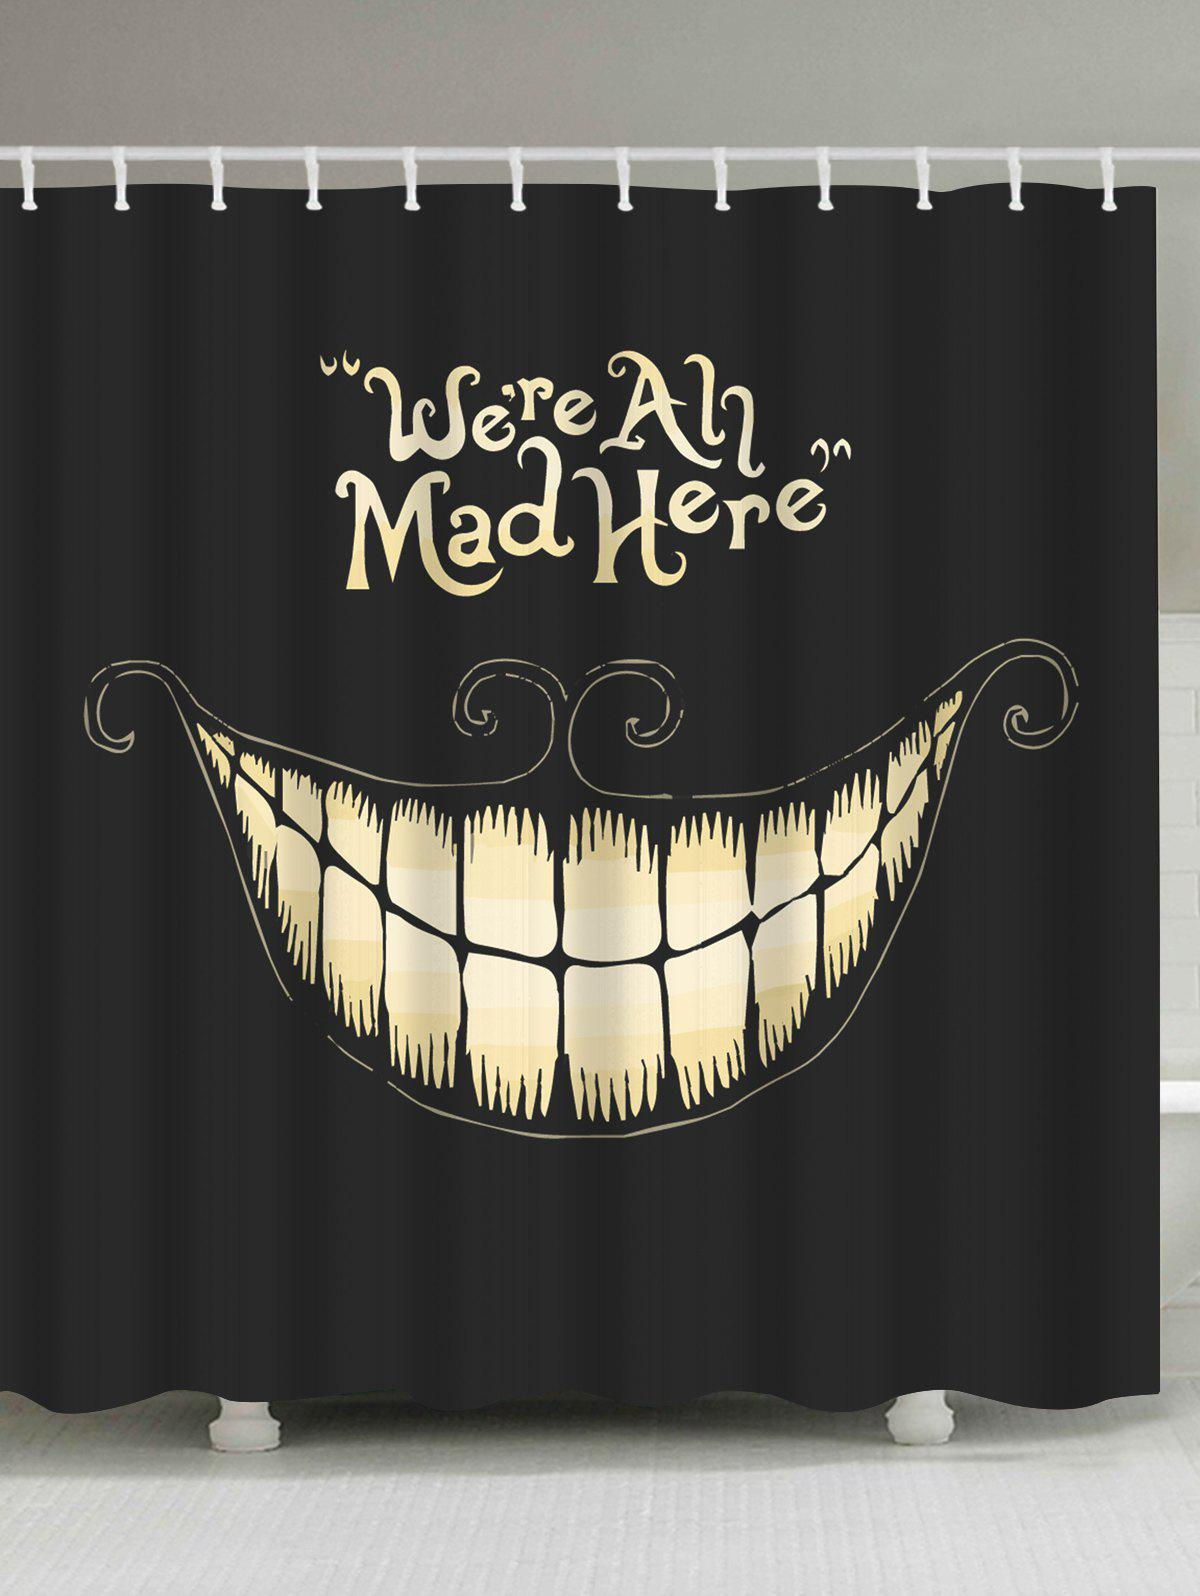 Funny Smiling Fabric Halloween Decor Shower CurtainHOME<br><br>Size: W71 INCH * L71 INCH; Color: BLACK; Products Type: Shower Curtains; Materials: Polyester; Pattern: Print; Style: Festival; Number of Hook Holes: W59 inch*L71 inch: 10; W71 inch*L71 inch: 12; W71 inch*L79 inch: 12; Package Contents: 1 x Shower Curtain 1 x Hooks (Set);